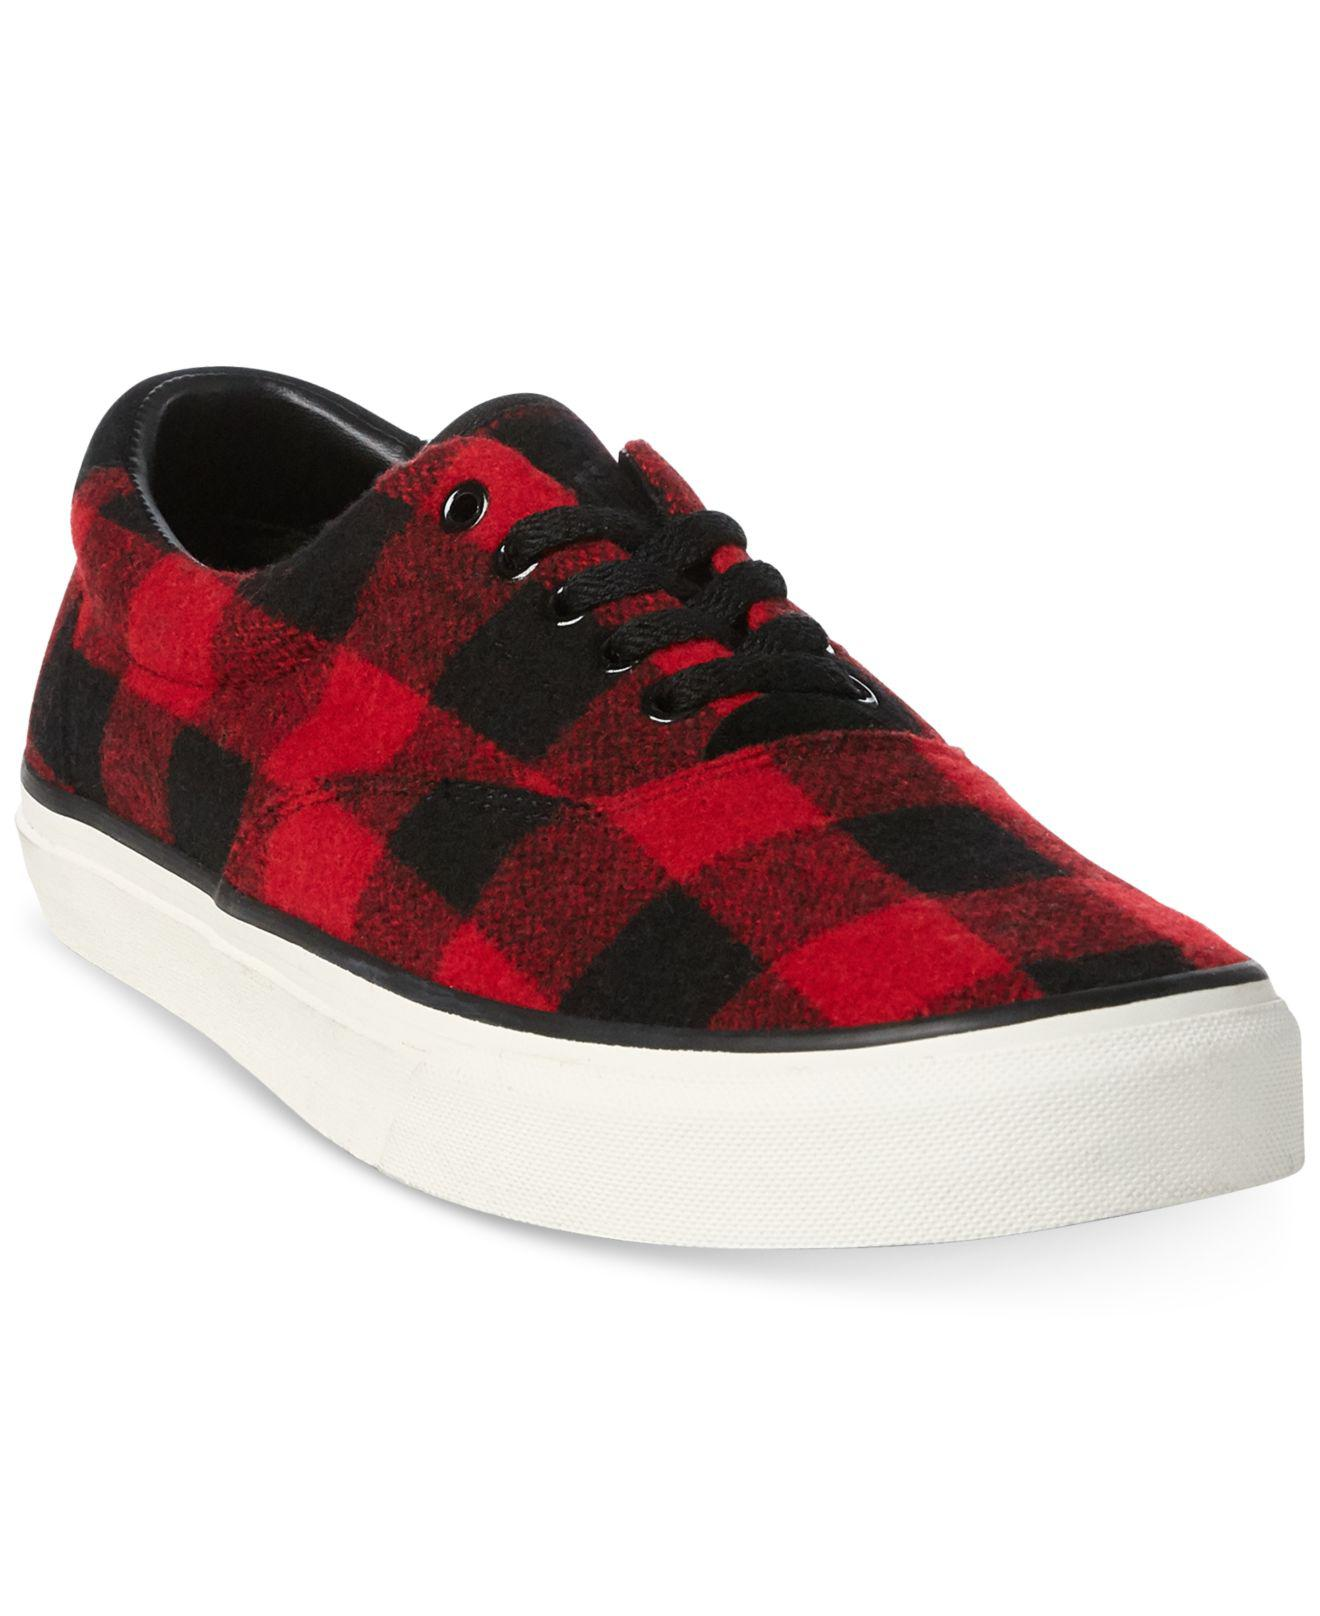 5b9516d3807 Lyst - Polo Ralph Lauren Thorton Check Sneakers in Red for Men